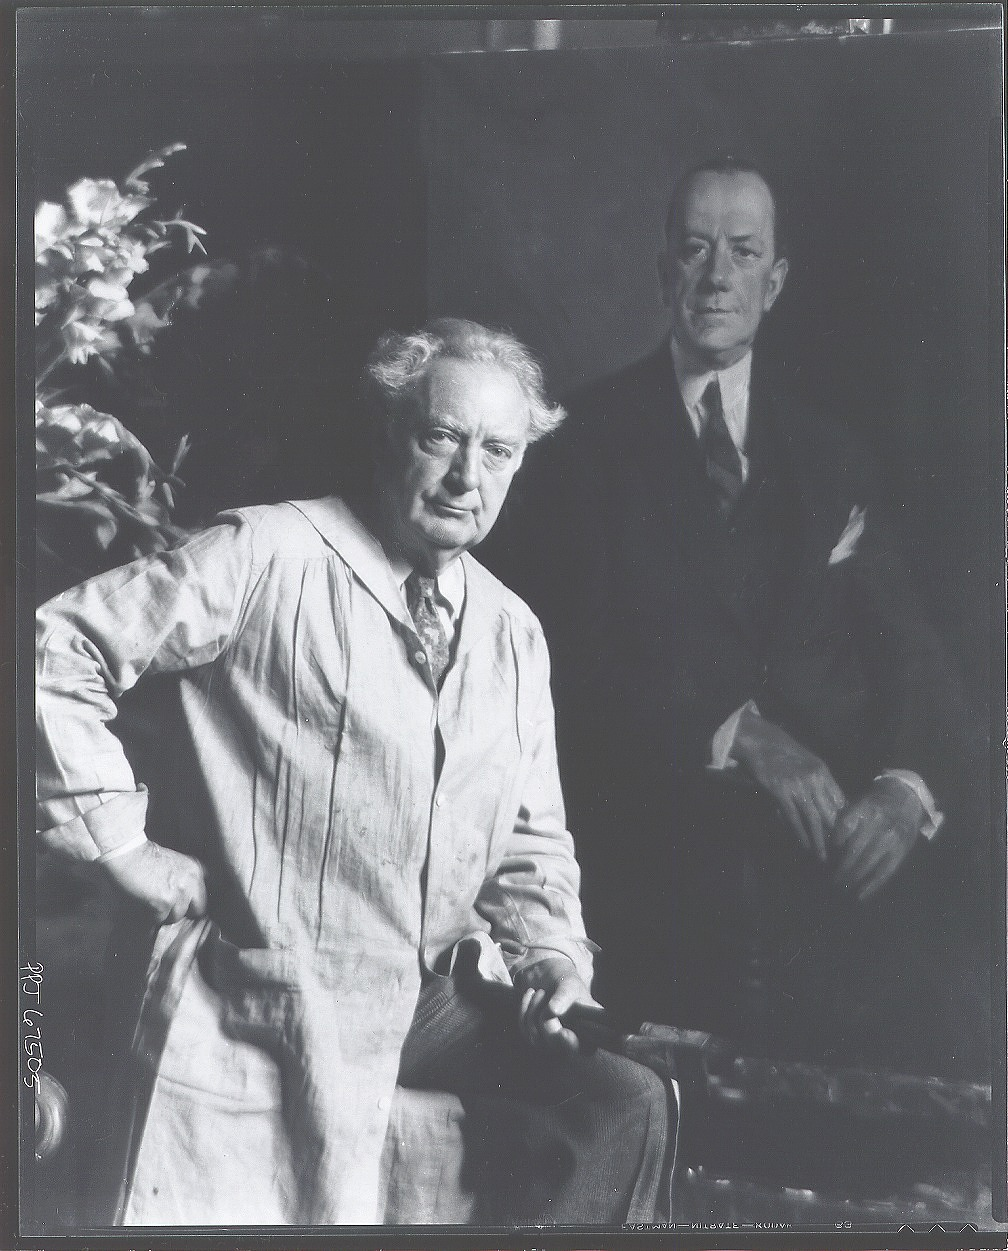 Howard Chandler Christy in his studio with a painting [photograph] / (photographed by Peter A. Juley & Son)